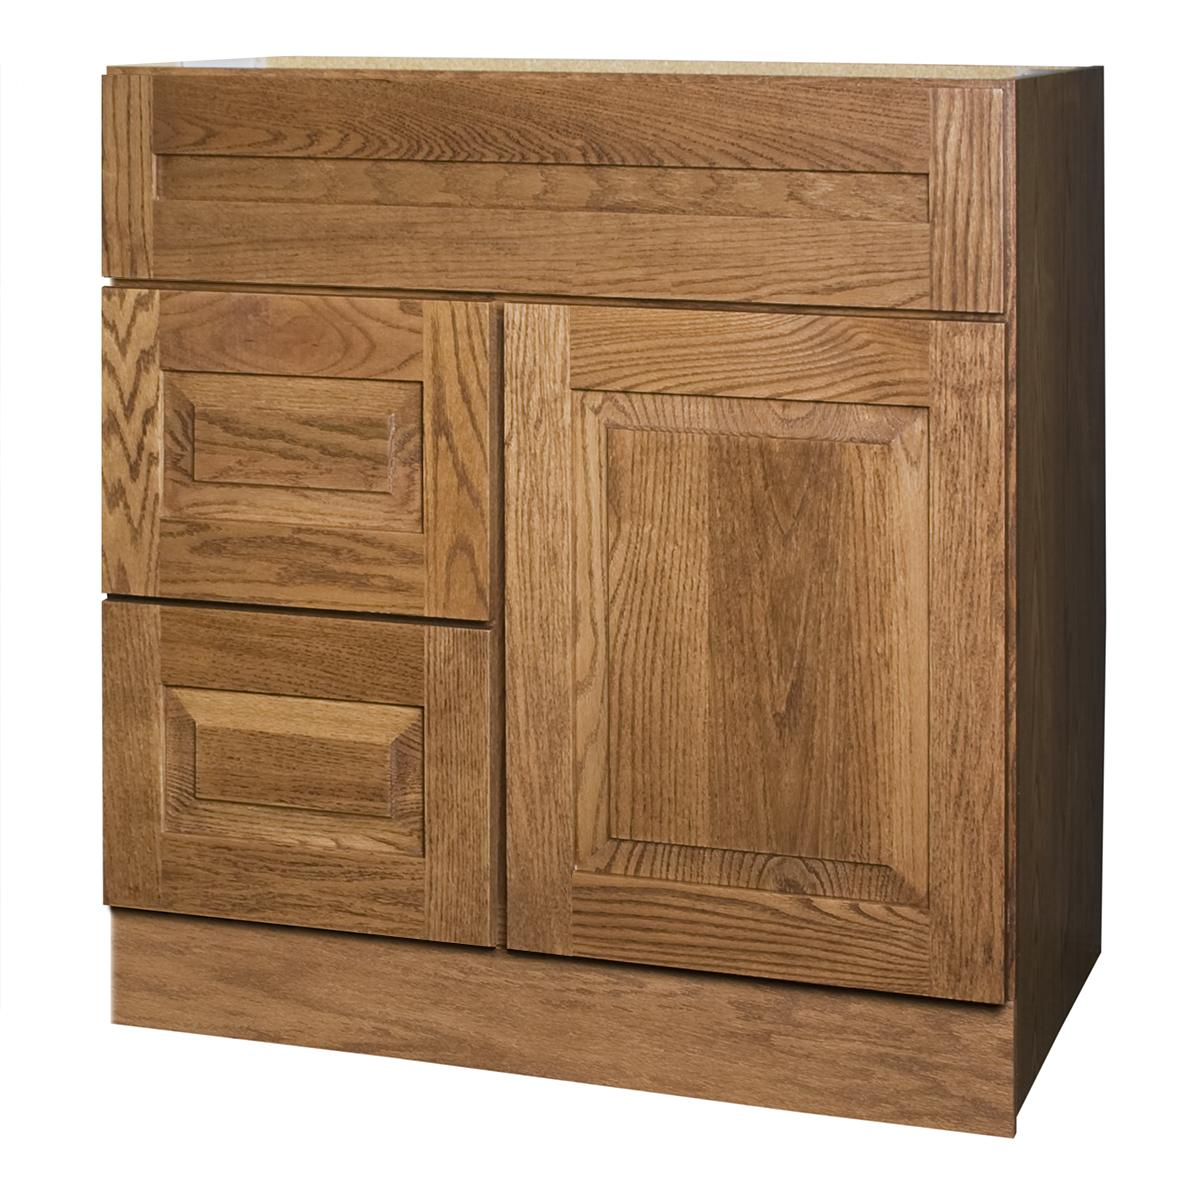 Amalfi Series 30x18 inch Vanity Base with Left side Drawers Over